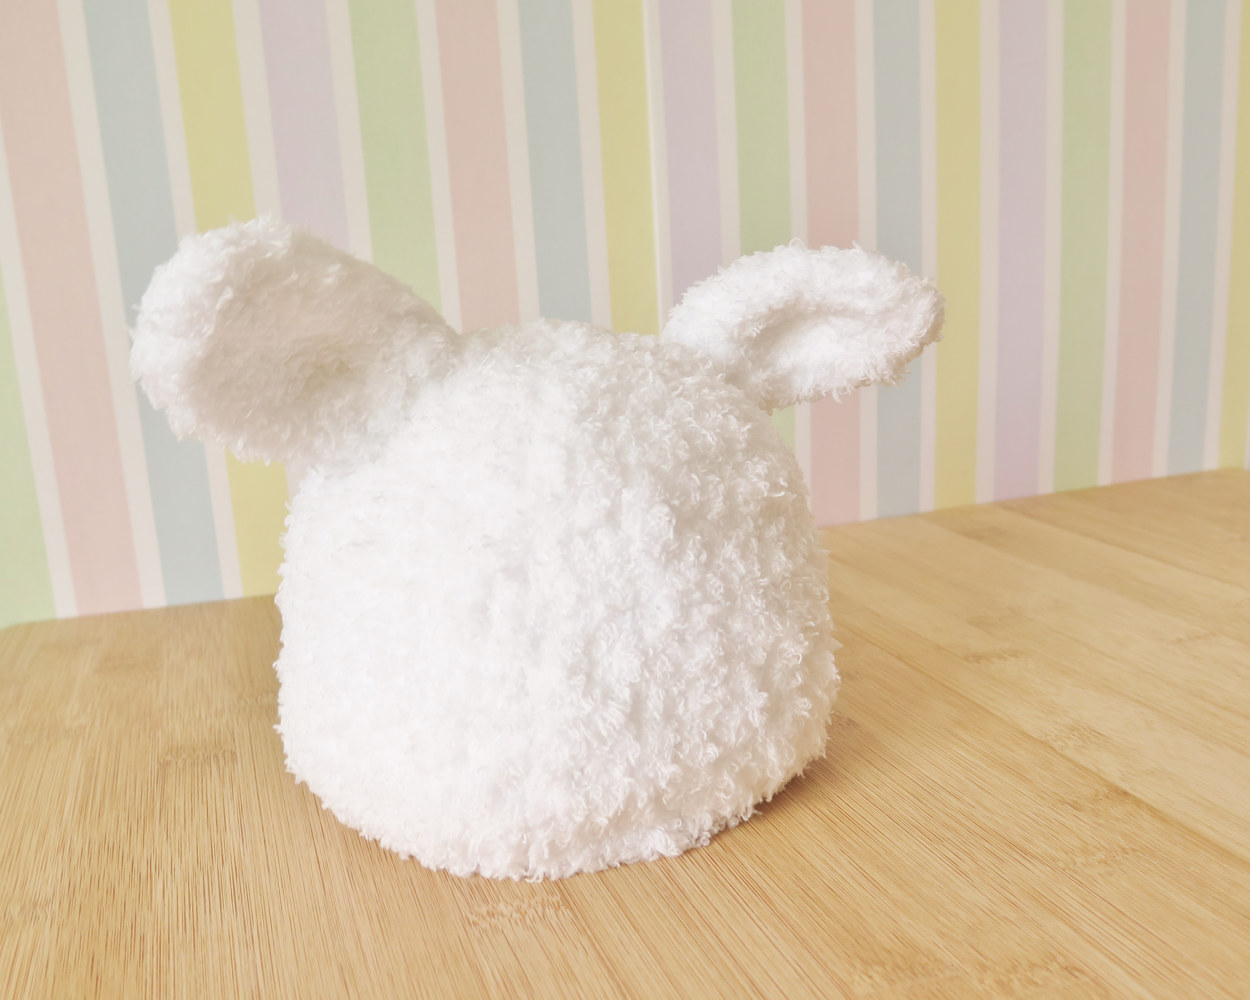 Tuque blanche bébé lapin  by Genevieve Desy